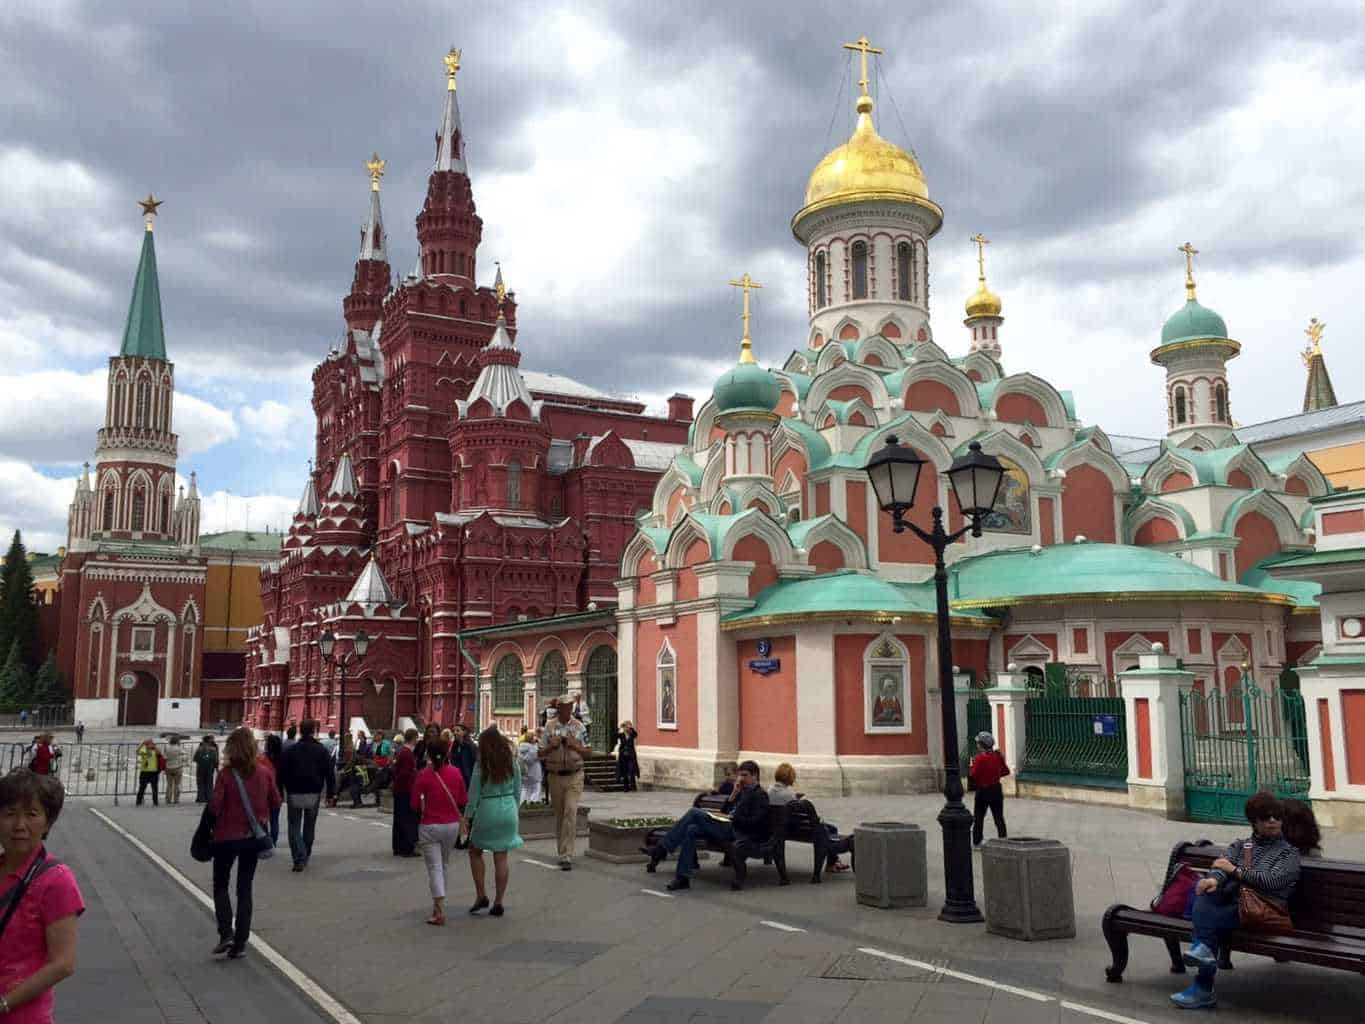 Red Square Moscow Russia with the Kremlin and church of christ the saviour. These are the places are the reason why you should go to moscow. This is a photo of people walking towards two great moscow tourist attractions